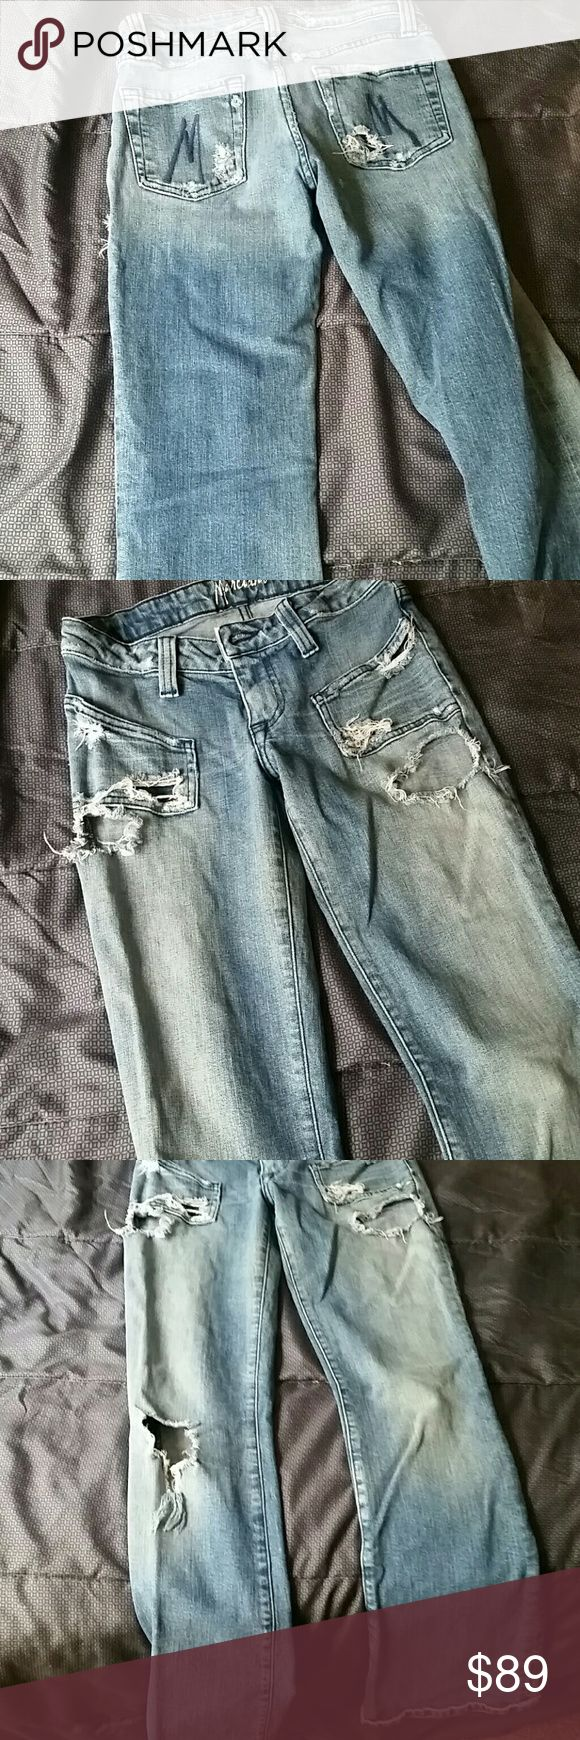 MARCIANO DESTROYED JEANS TIGHT FIT DEYSTROYED. GUESS MARCIANO SIZE 26 SMALL PRE LOVED Marciano Jeans Boot Cut